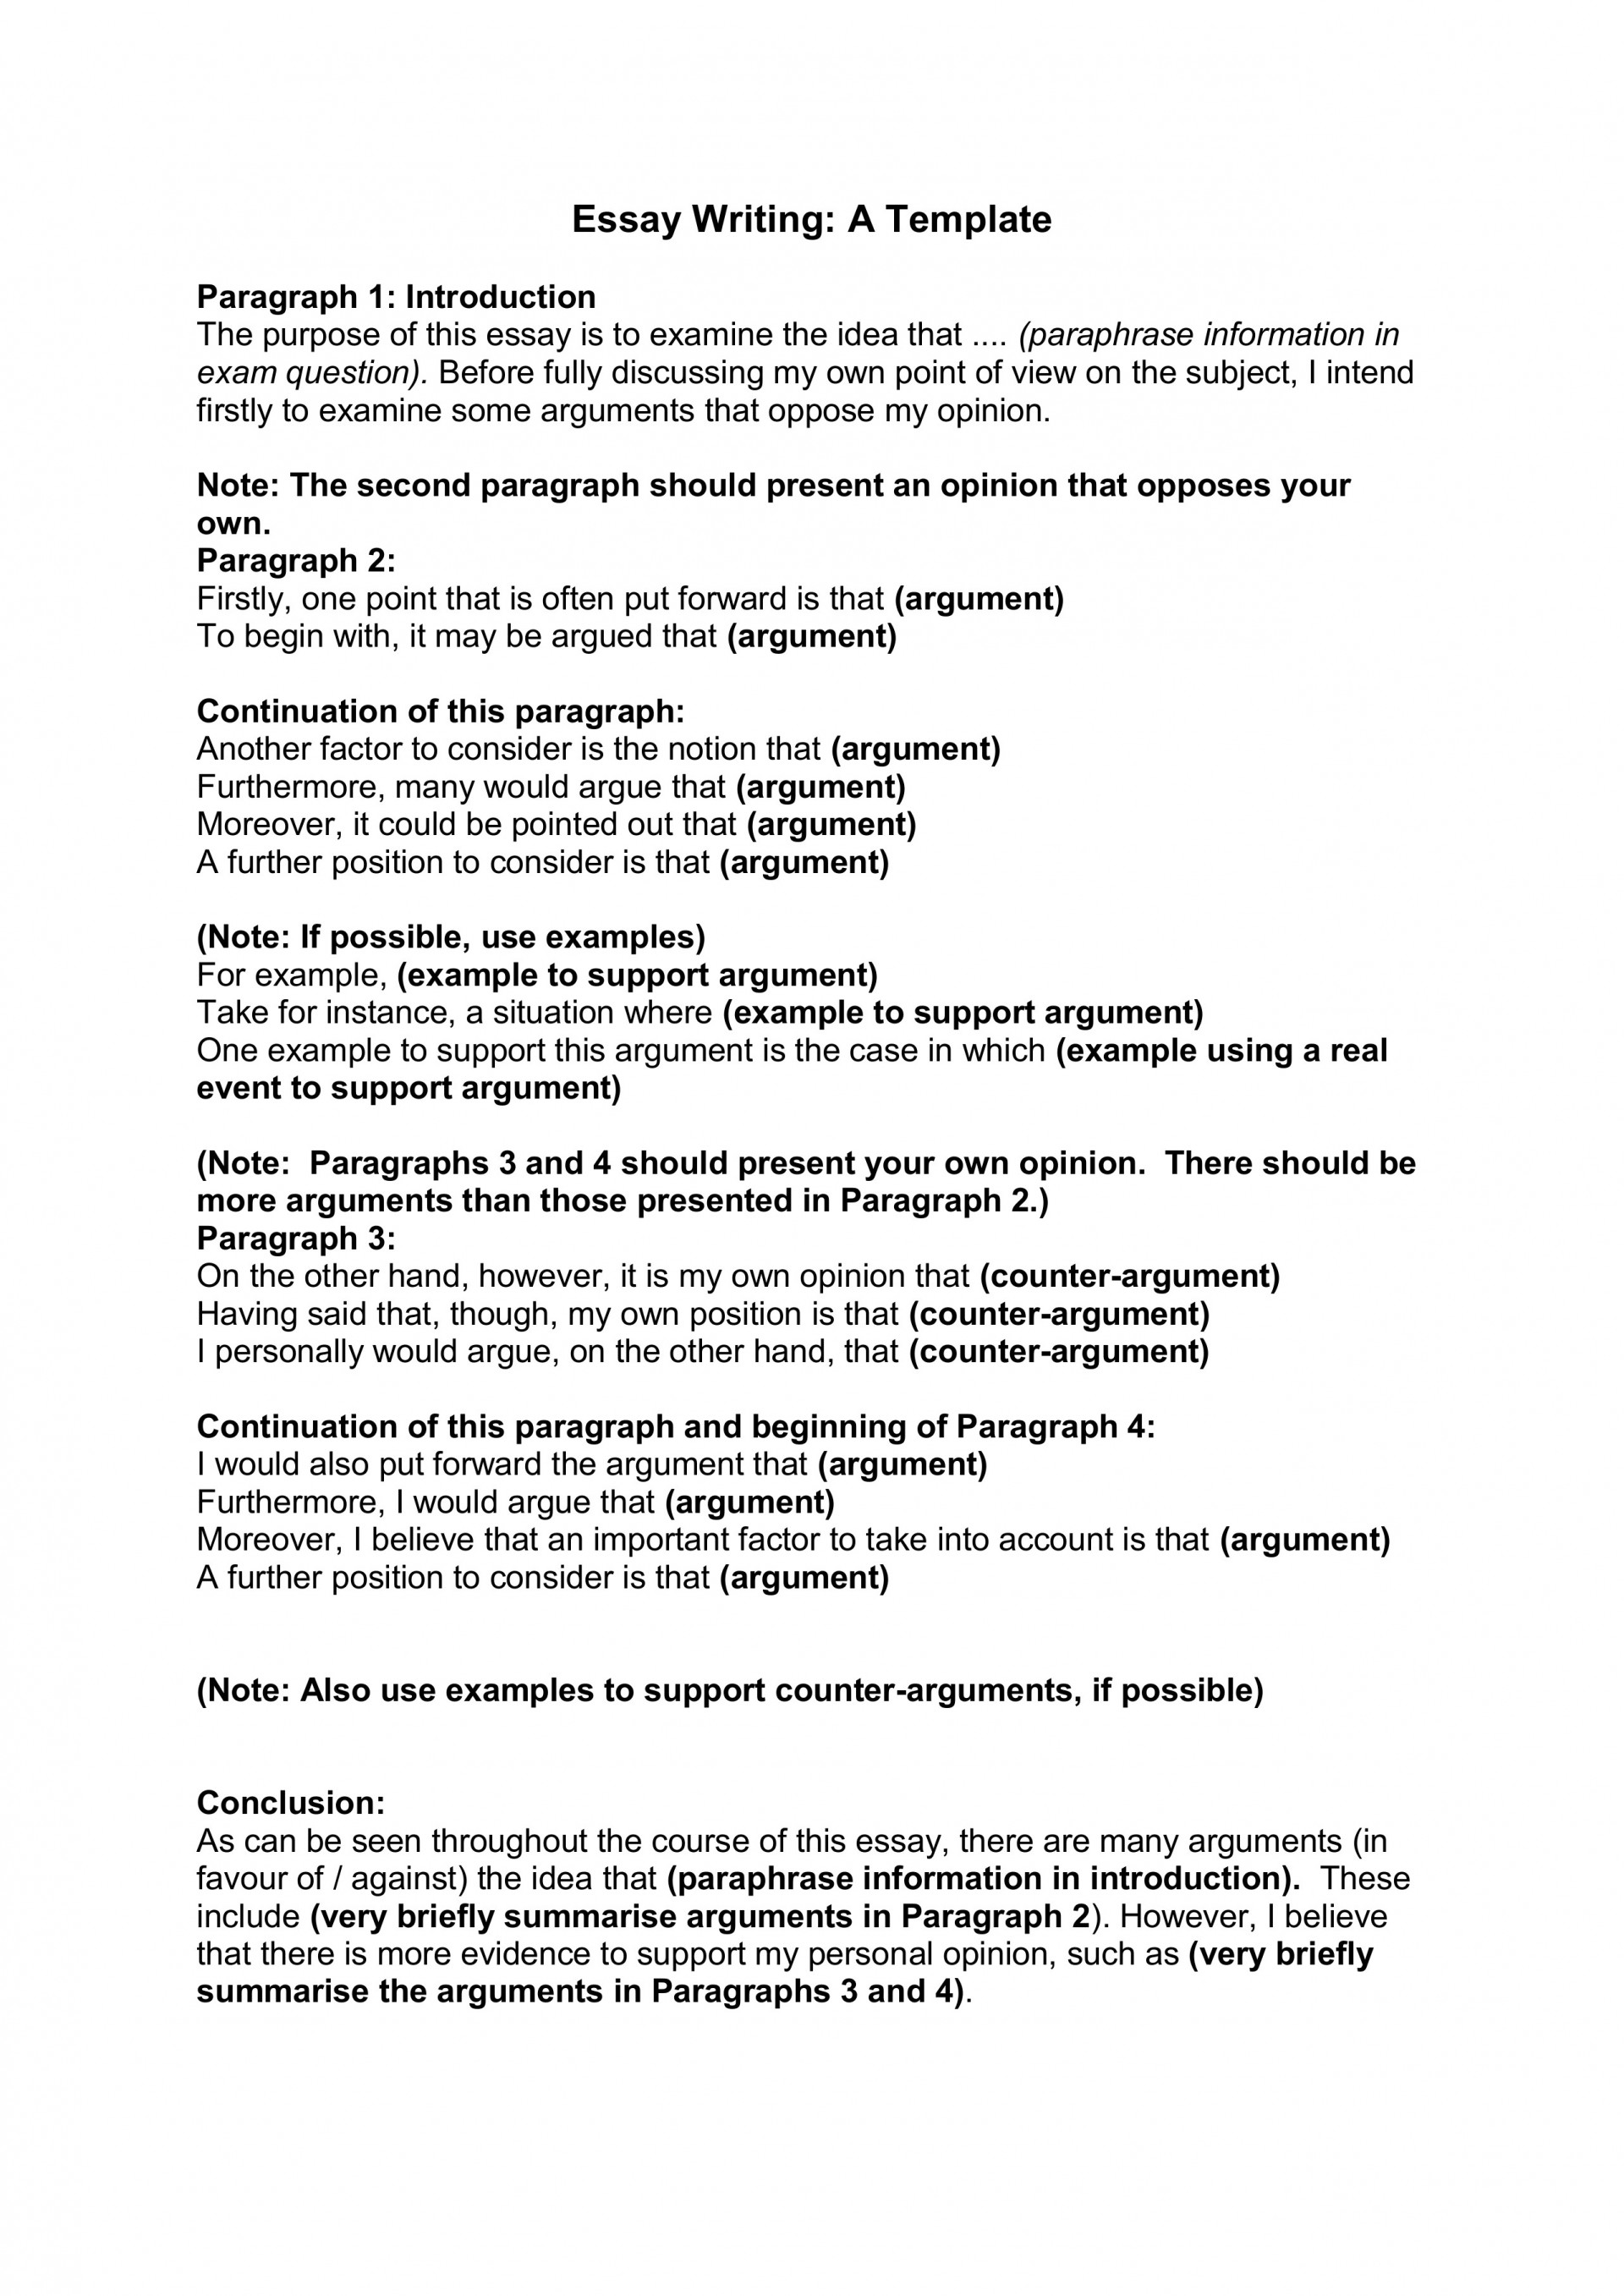 025 Essay Writing Template For Part How Many Sentences Are In Best A Much Make Paragraph An 250 Word 1920